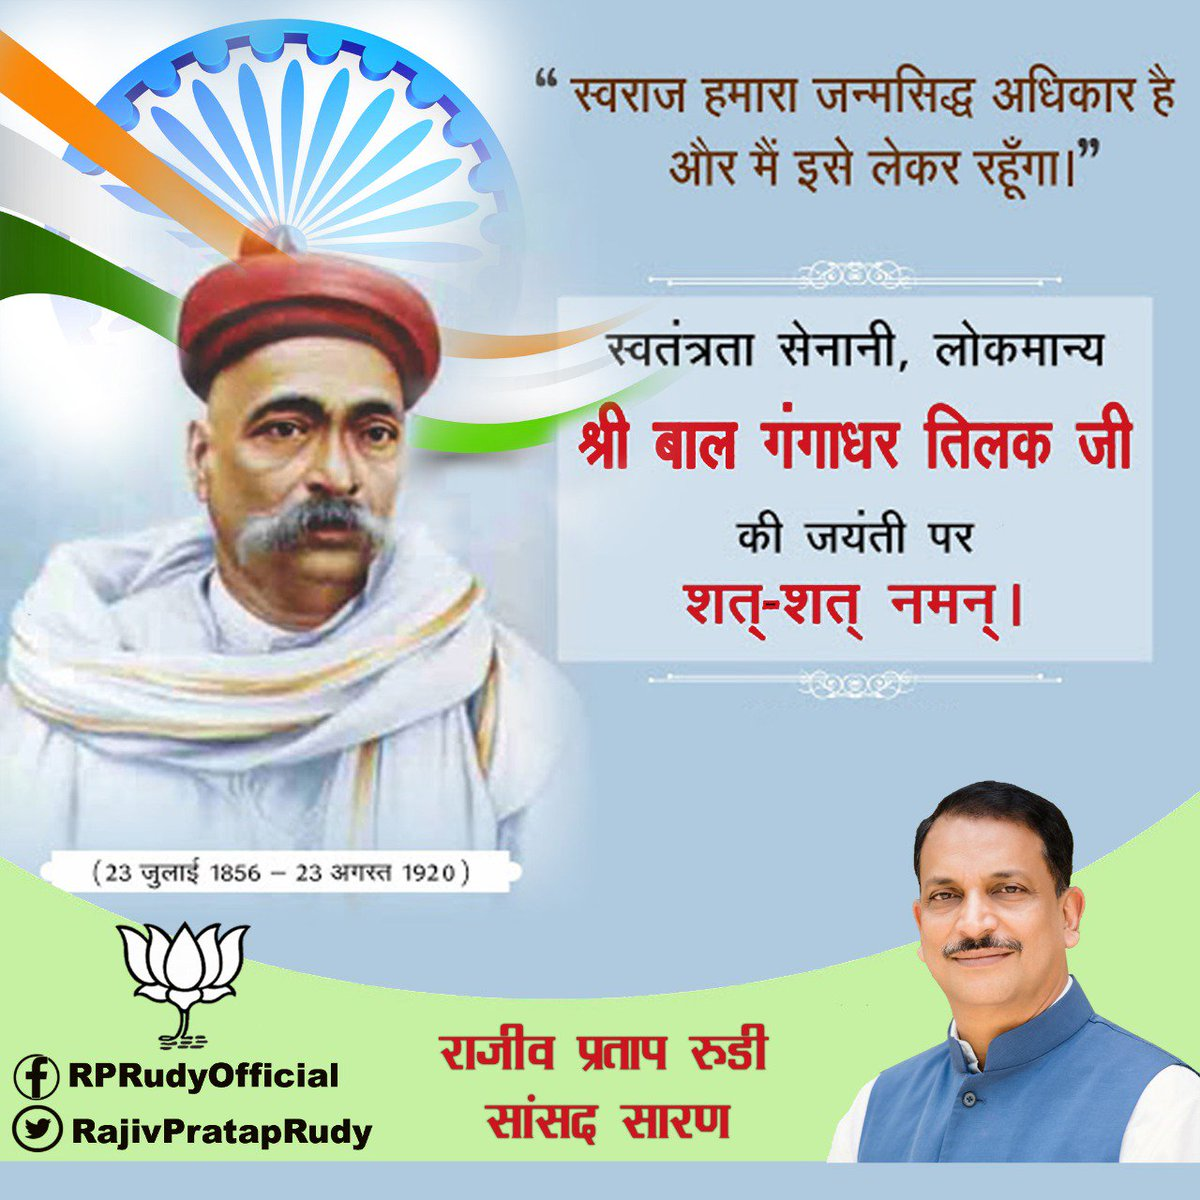 freedom is my birthright 6 tilak coined the famous slogan swaraj is my birthright and i shall have it, which inspired lakhs to participate in the indian freedom movement he was one of the first and strongest advocates.